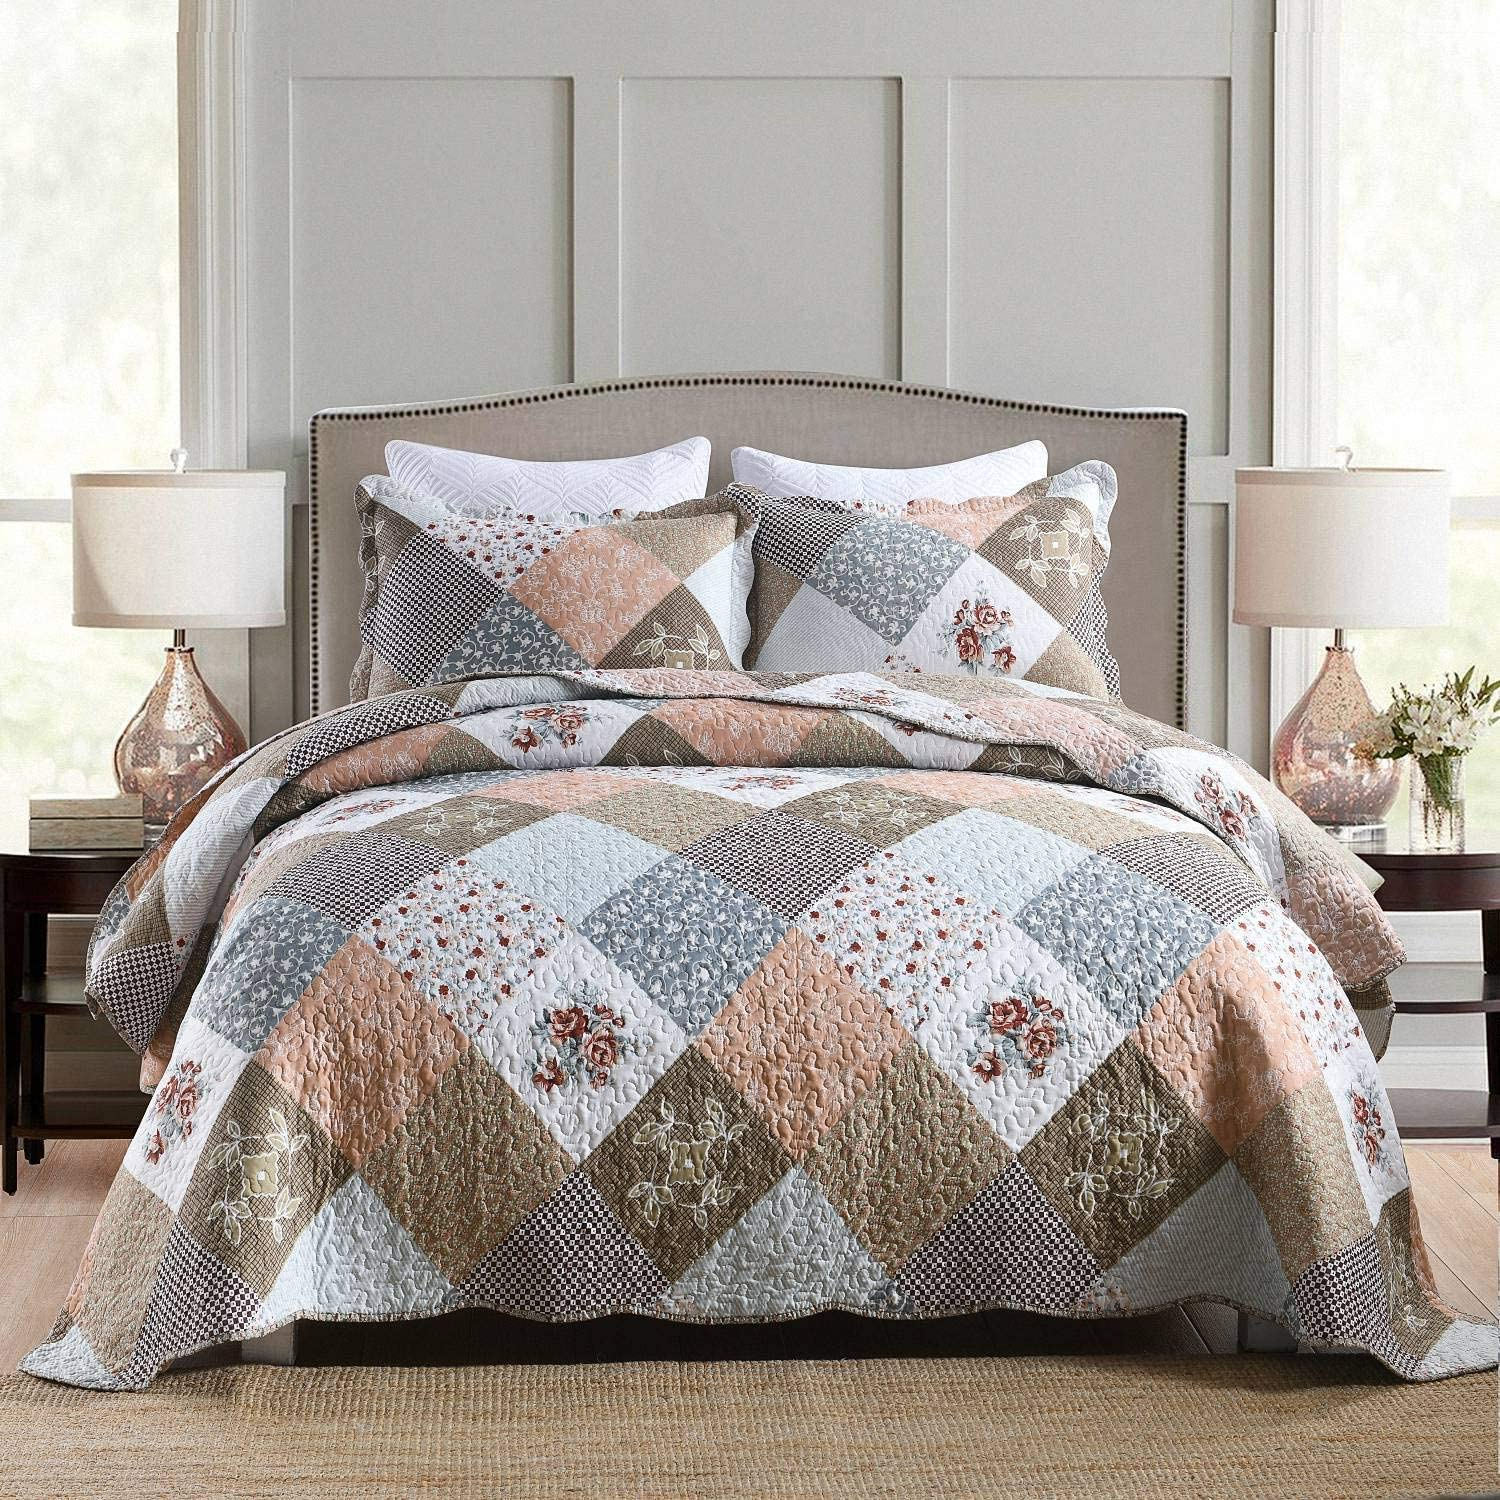 Homcosan Quilt Bedspreads Sets Queen/Full Size (90x98 inches), Reversible Mocha Floral Patchwork Patterns, Lightweight Coverlet for All Season, 3-Piece Bedding (1 Quilt + 2 Pillow Shams)